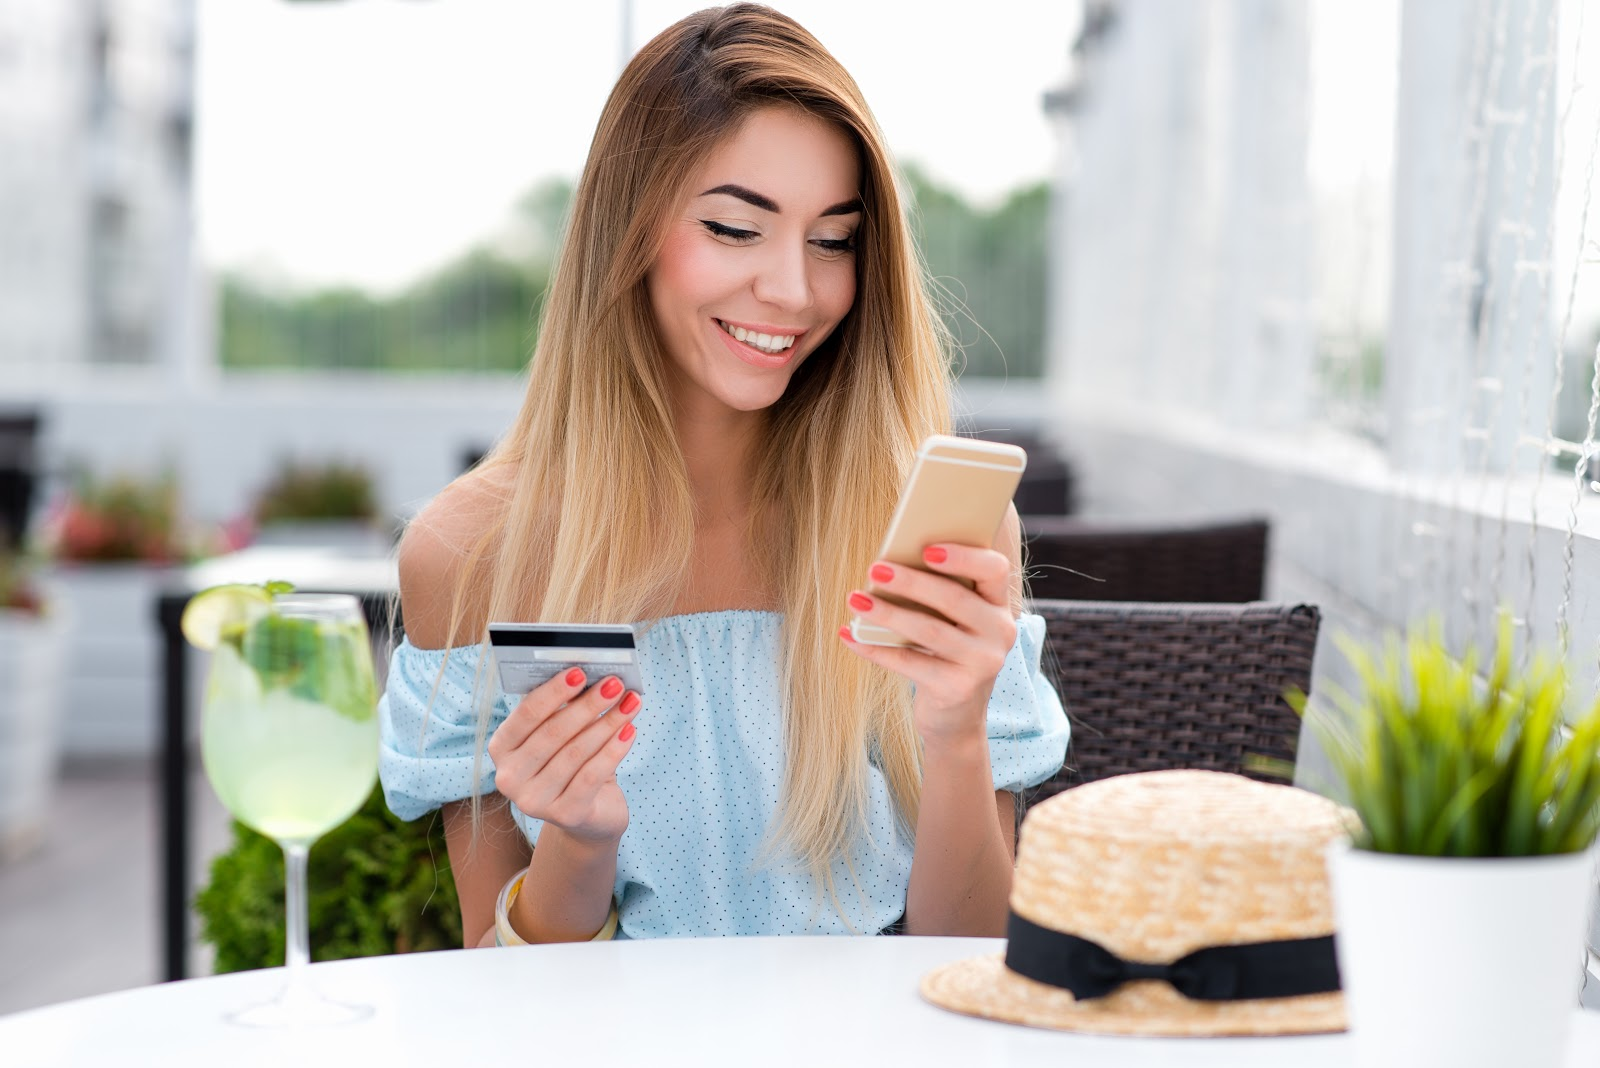 Smiling woman in a cafe holding a credit card and smartphone